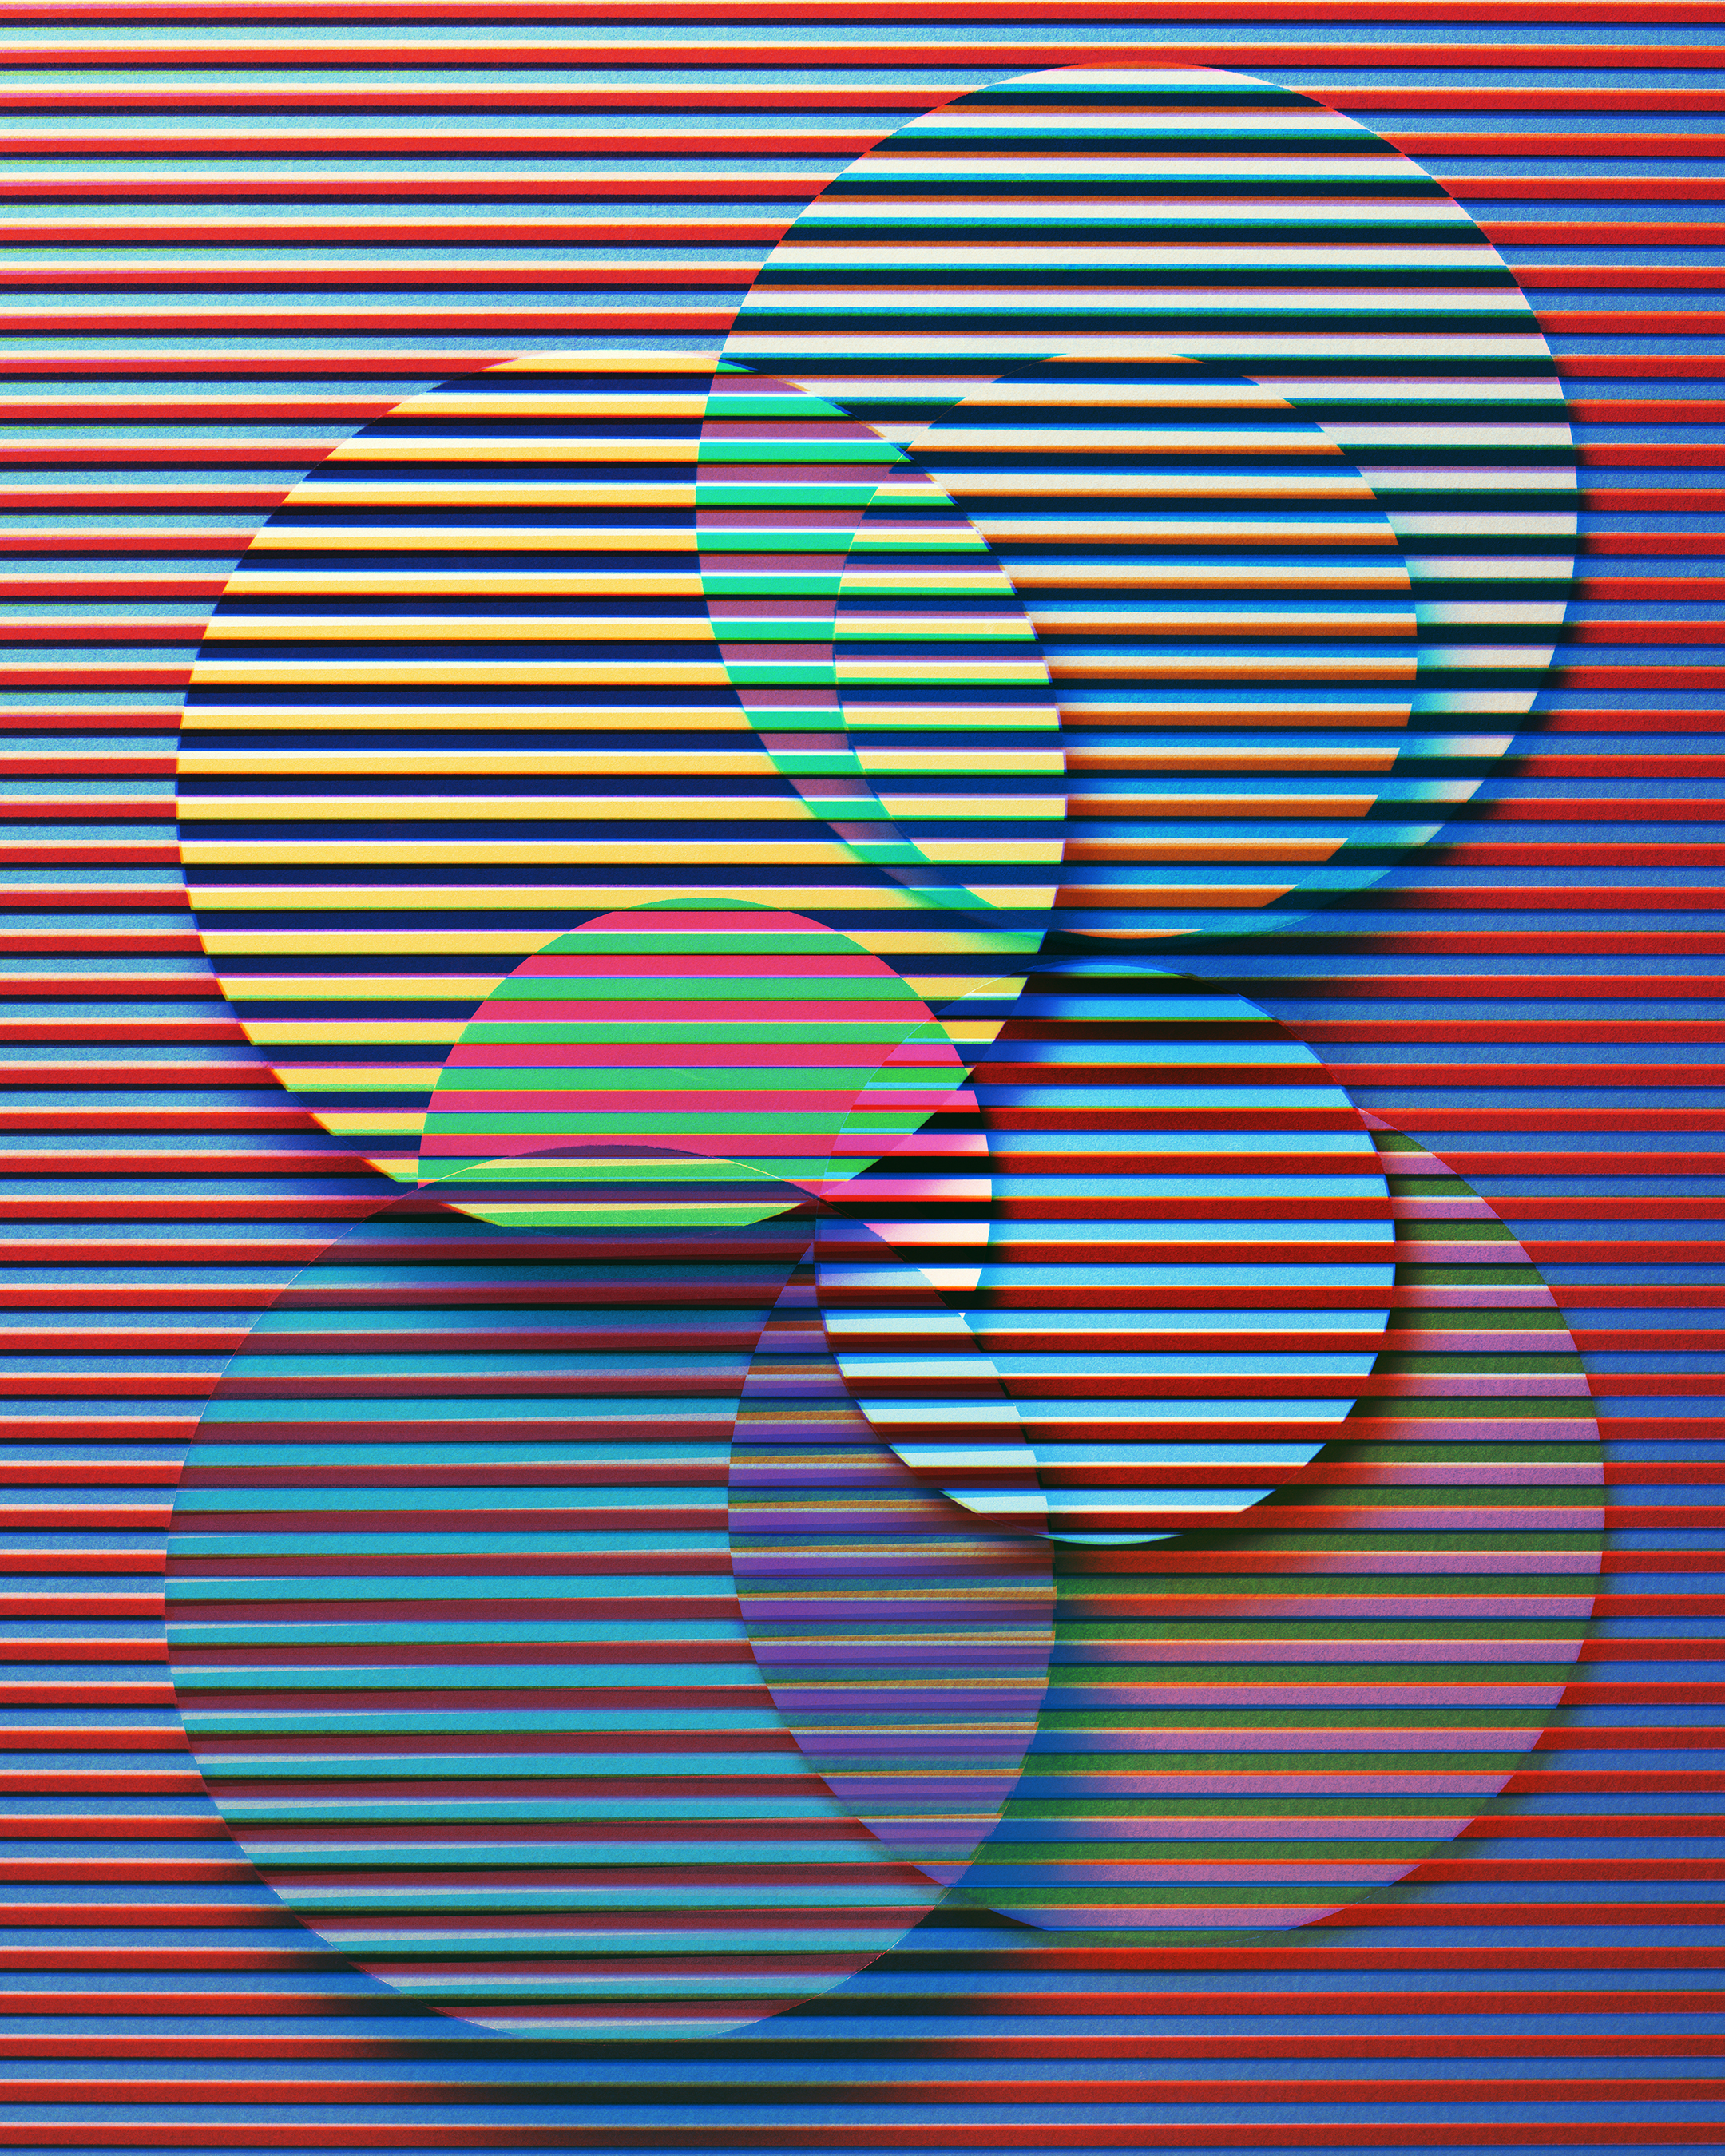 Jessica Eaton  Transition H45, 2016 archival pigment print © Jessica Eaton, Courtesy of the artist and M+B Gallery, Los Angeles